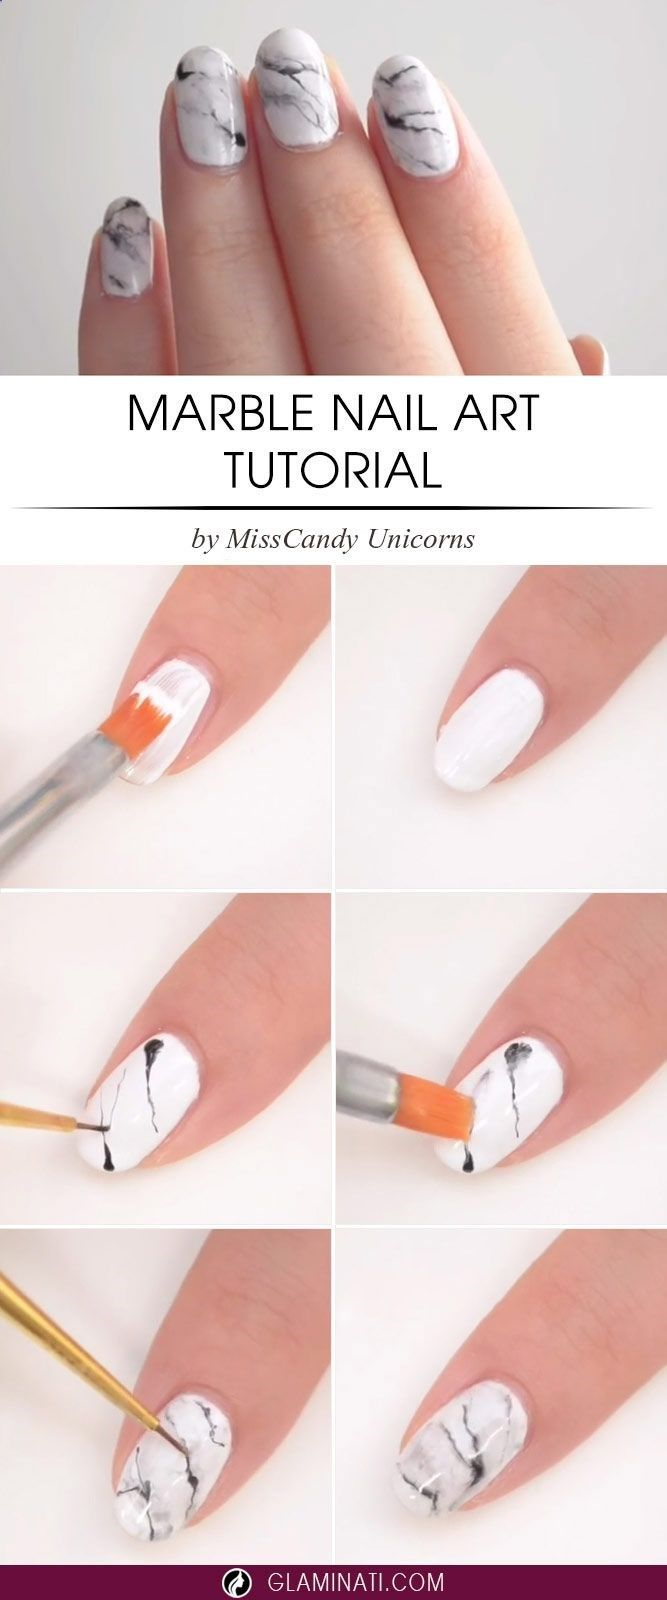 DIY Marble Nail Art Design Tutorial